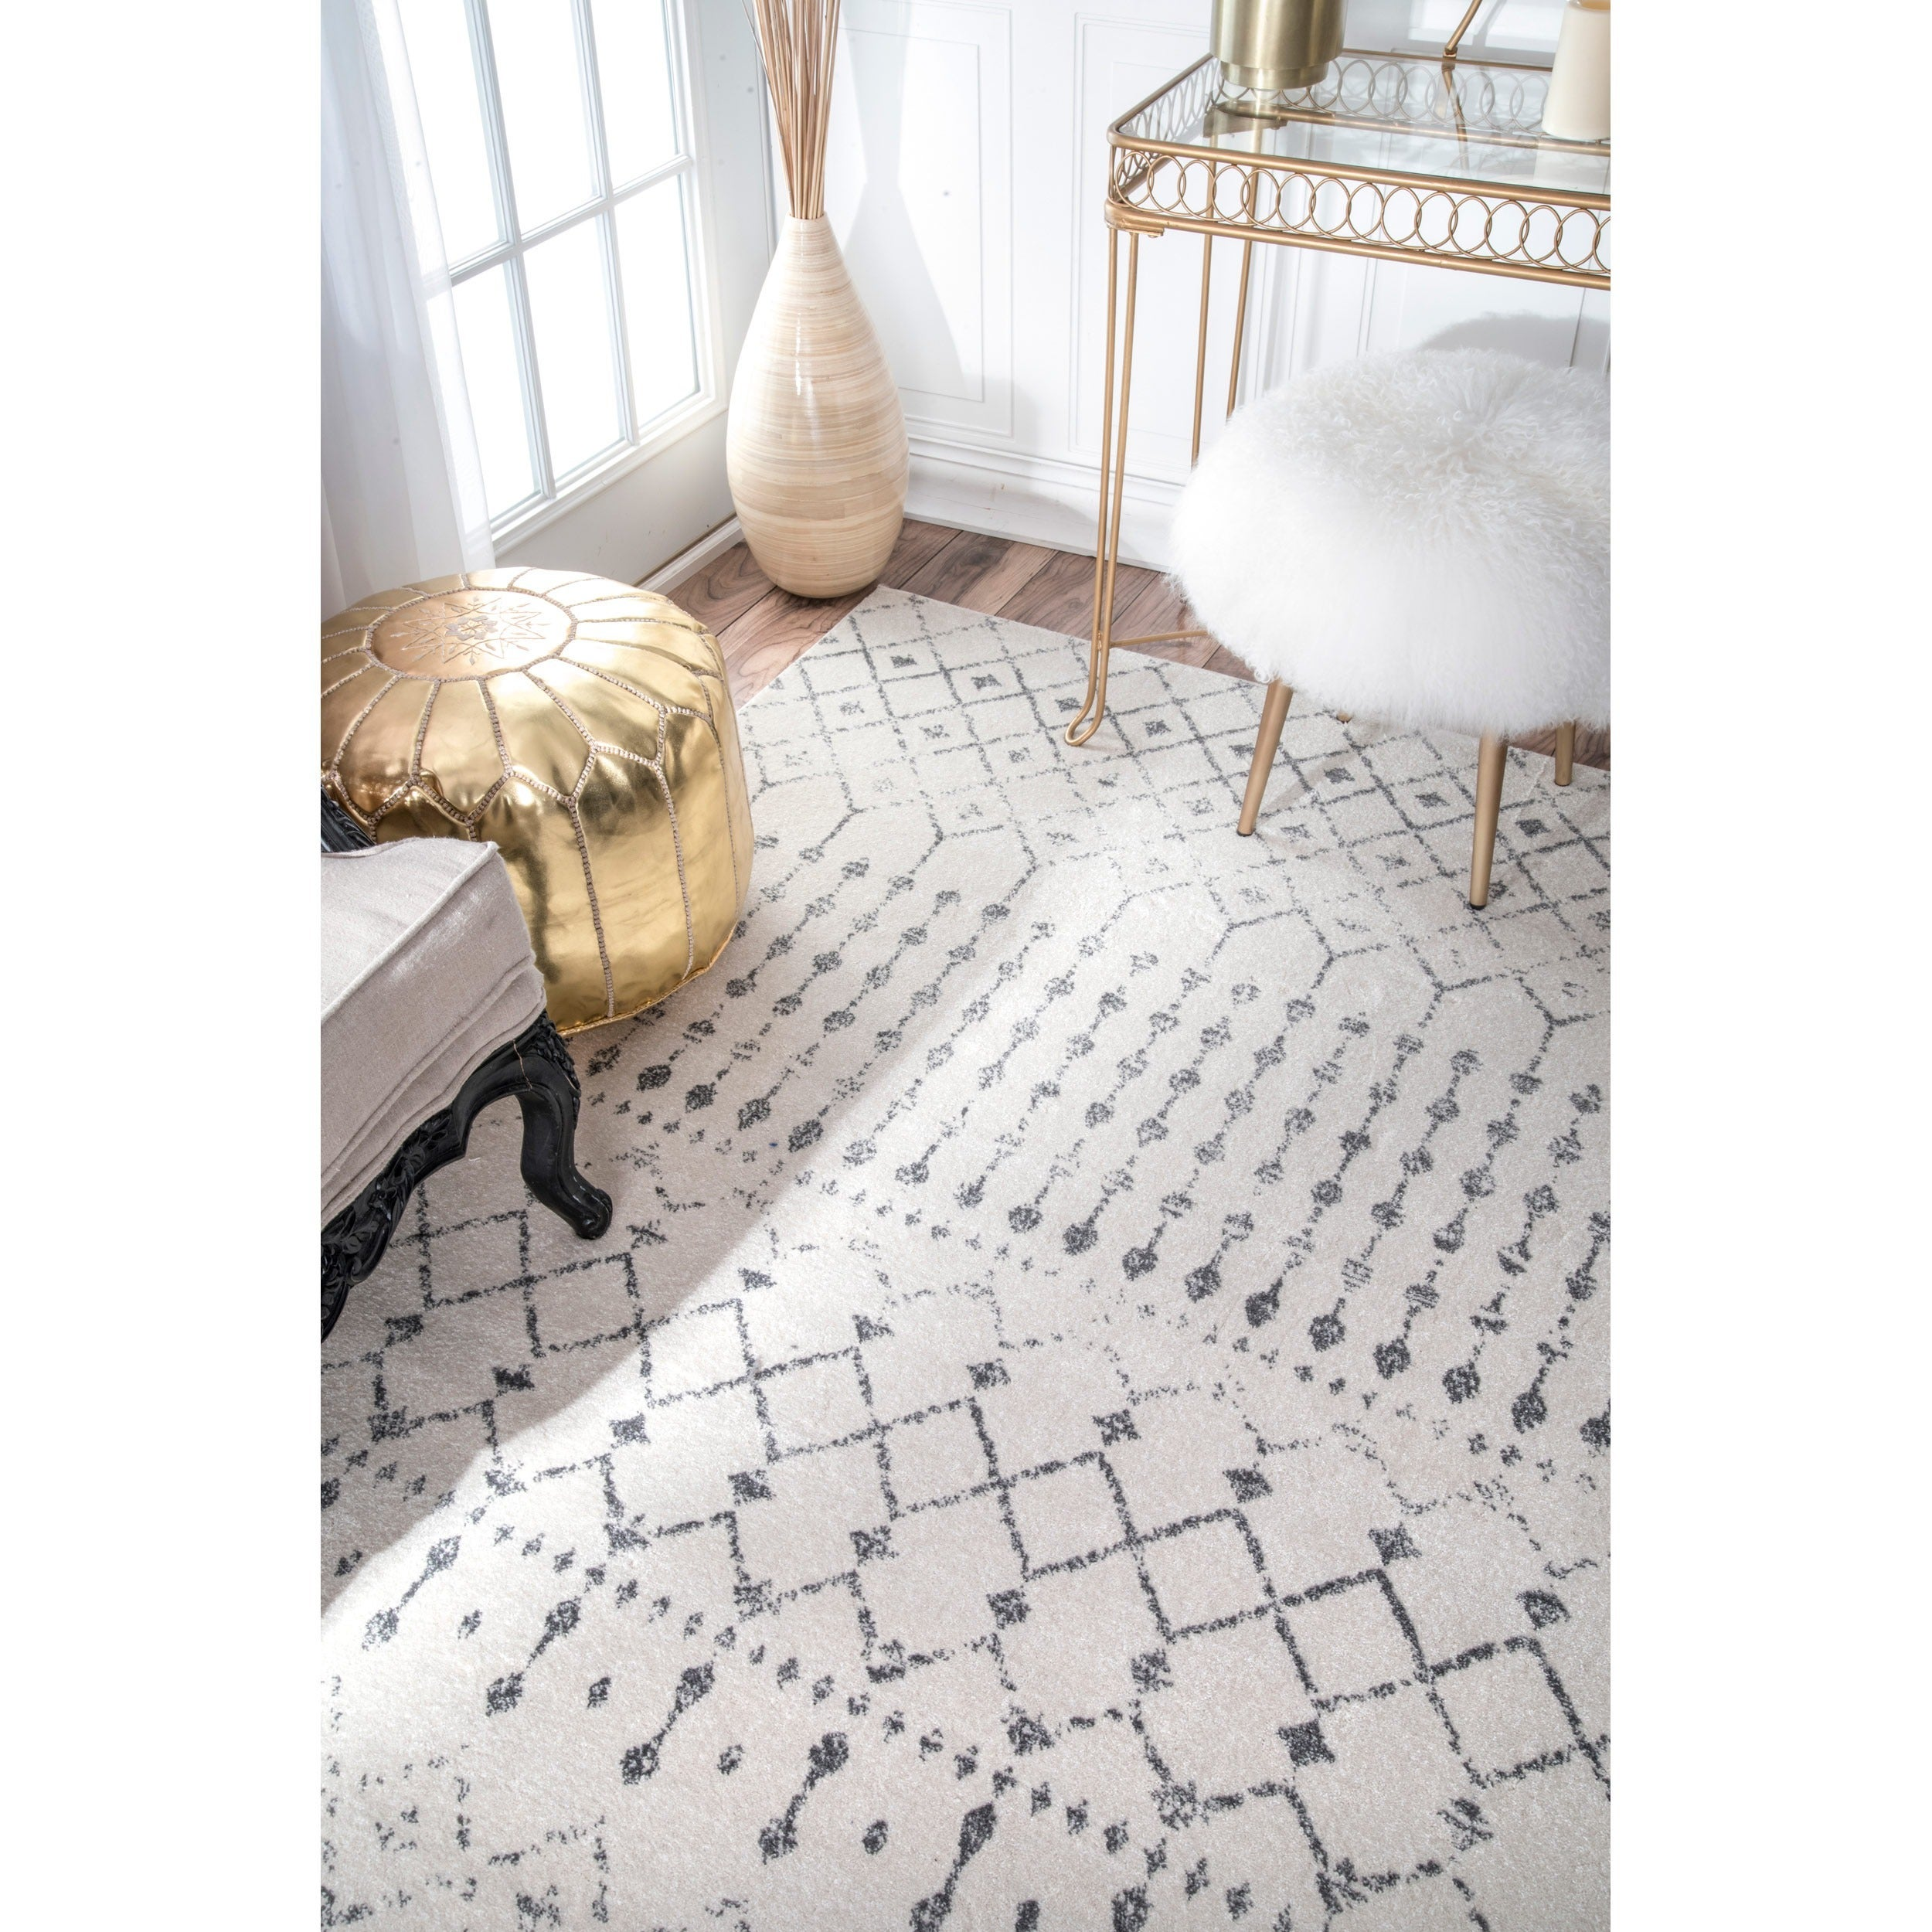 Shop moroccan trellis ivory rug 10 x 14 10 x 14 10 x 14 on sale free shipping today overstock com 23122757